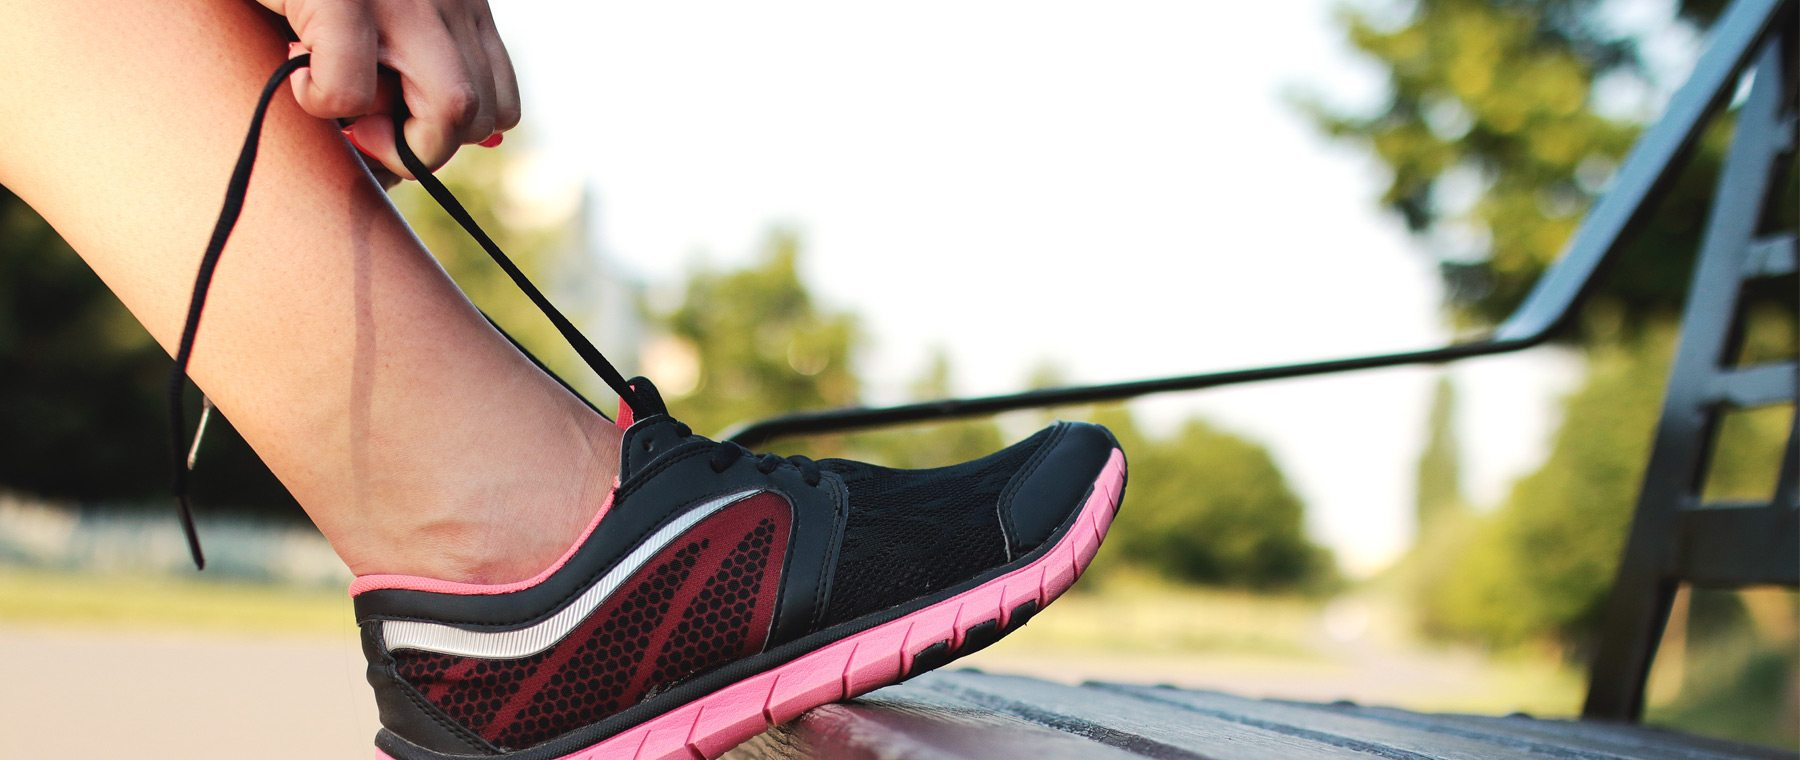 Noon-hour workouts: Tips on looking office-ready